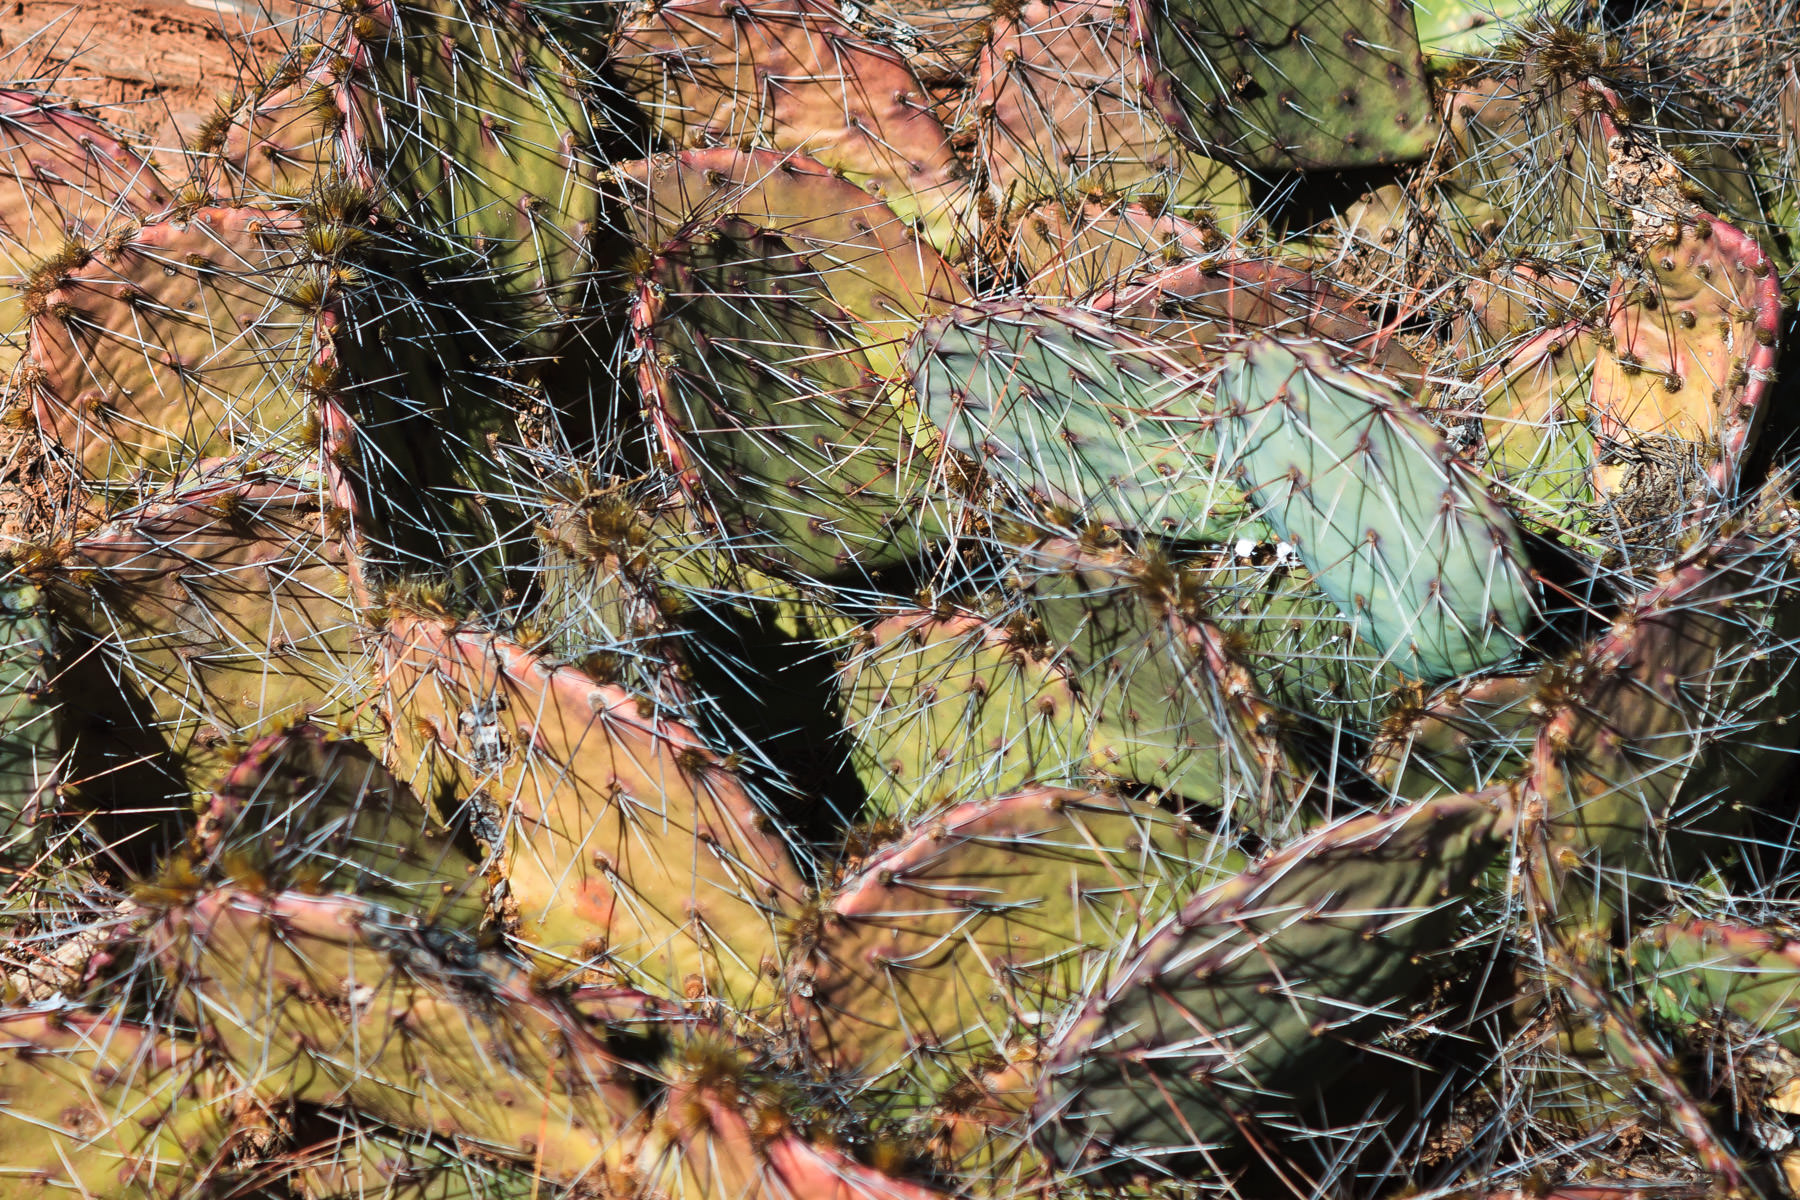 Prickly pear cactus at Copper Breaks State Park, Texas.